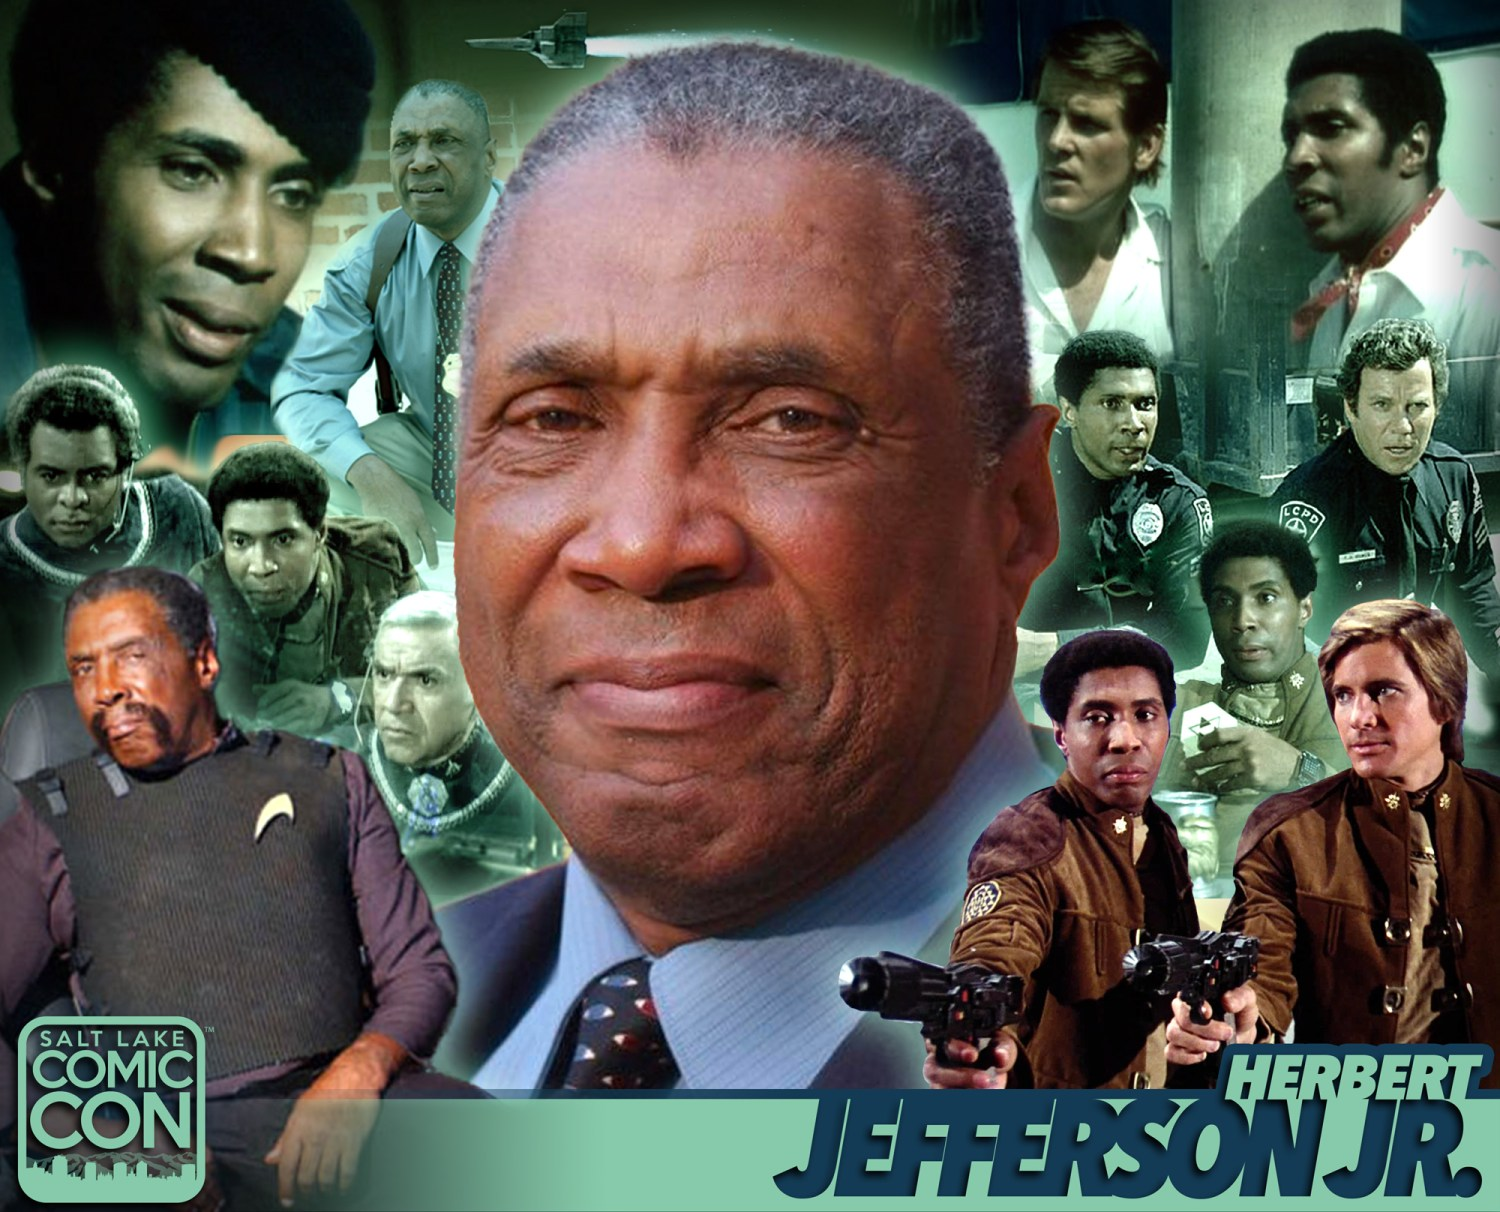 Herbert Jefferson Jr